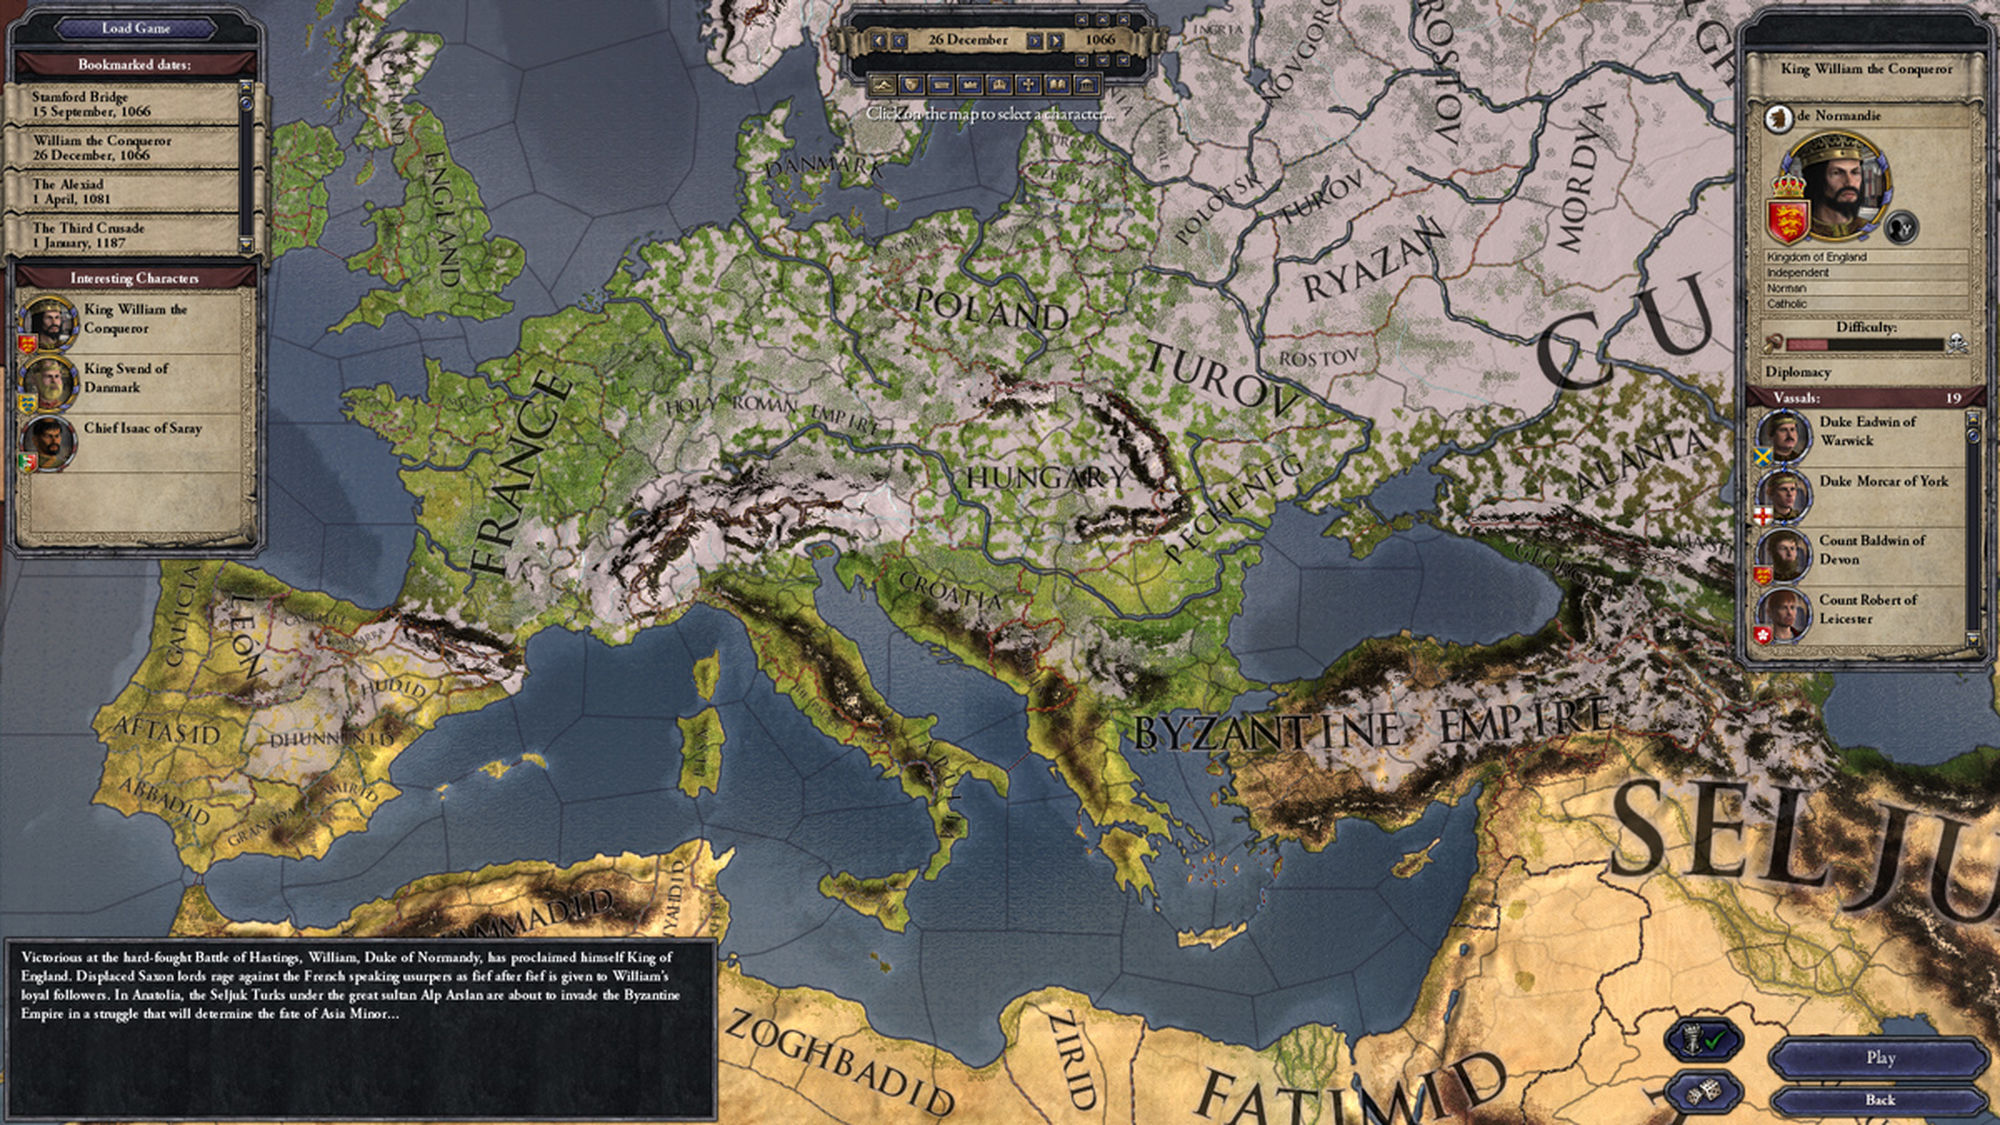 King of Kings: Several historical figures vie for these lands in CK2.